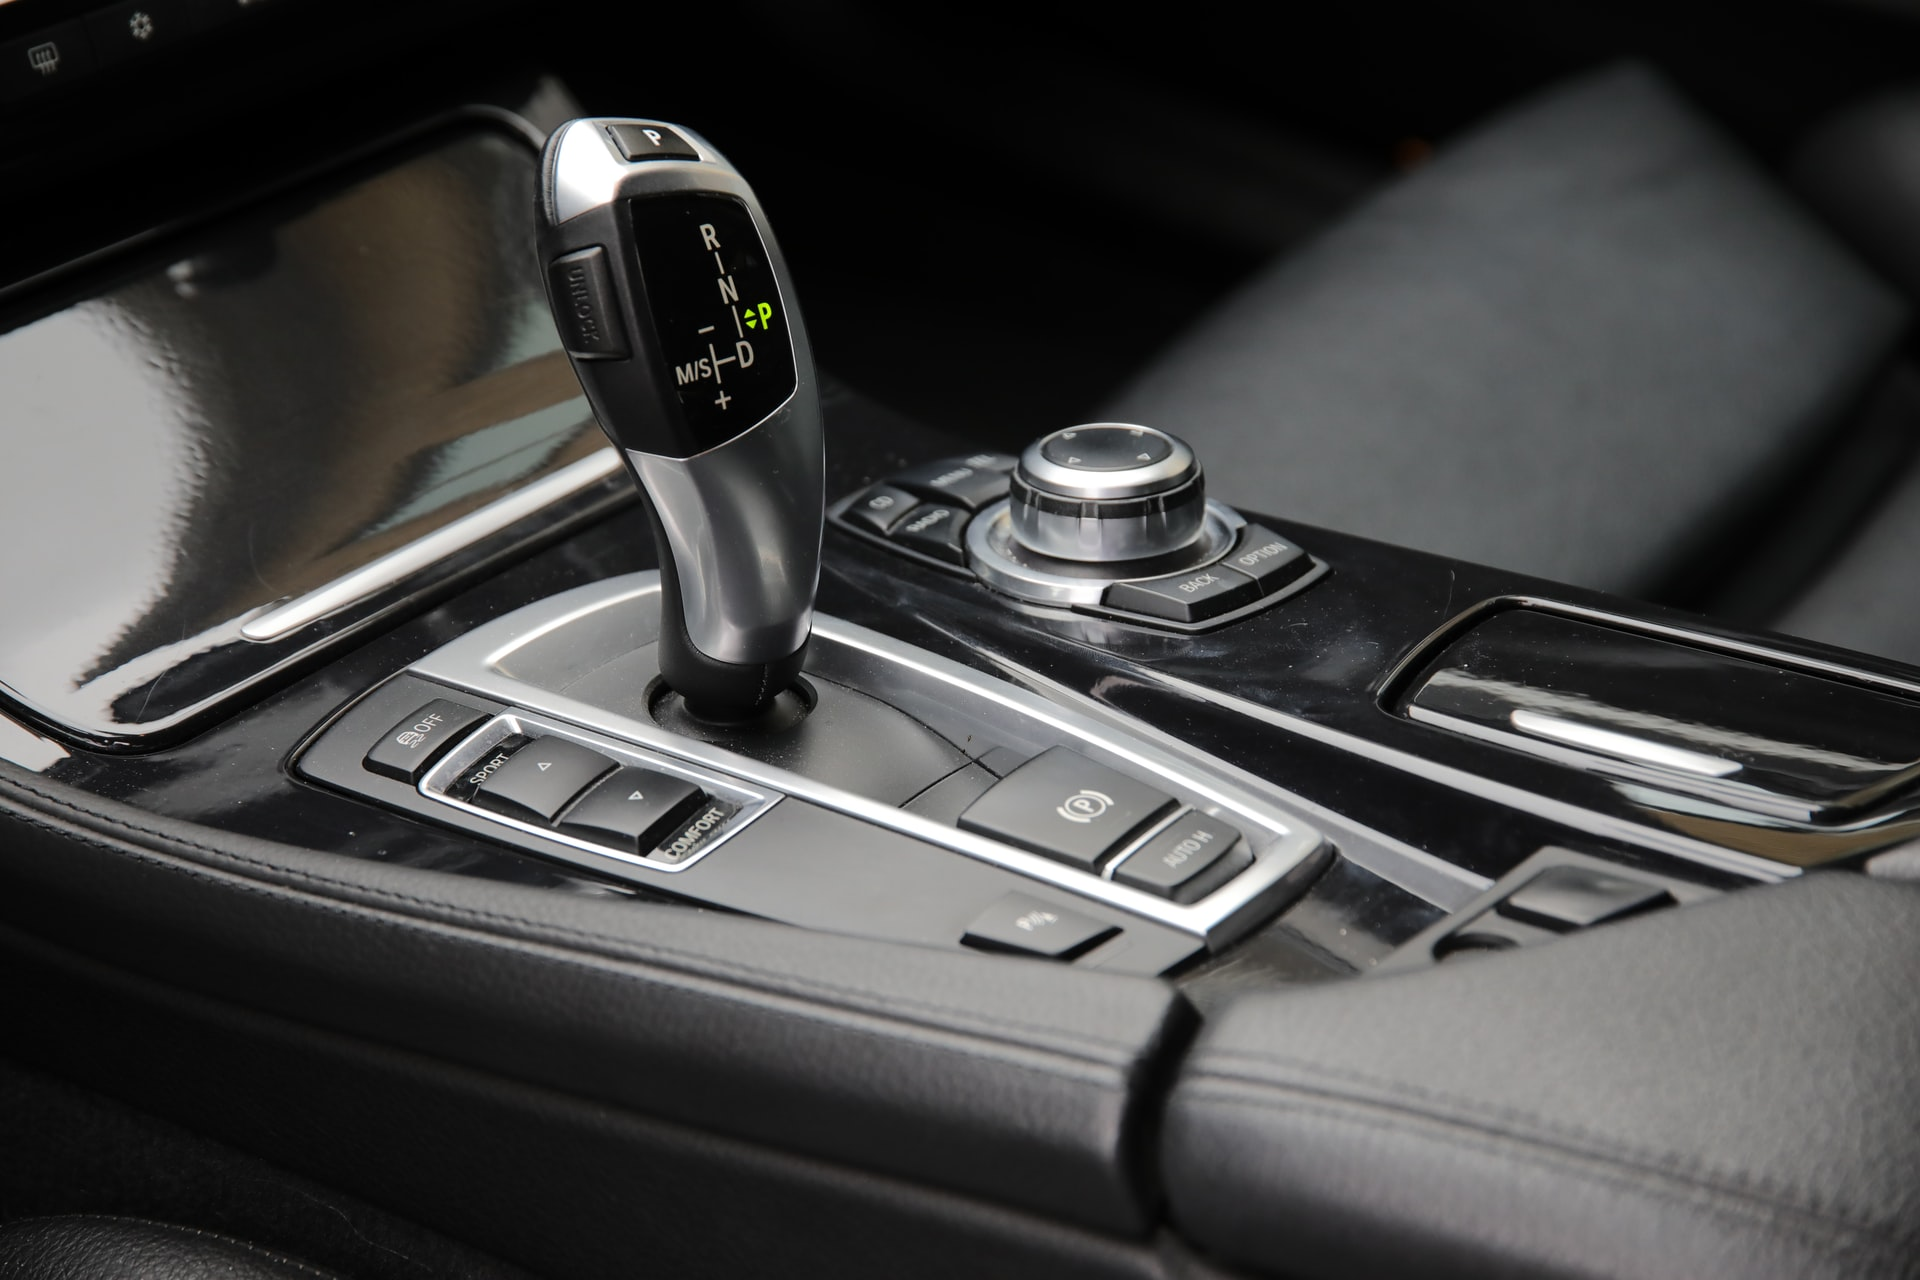 The infotainment systems bring cars closer to autonomy making everyday driving easier and improving driving safety.